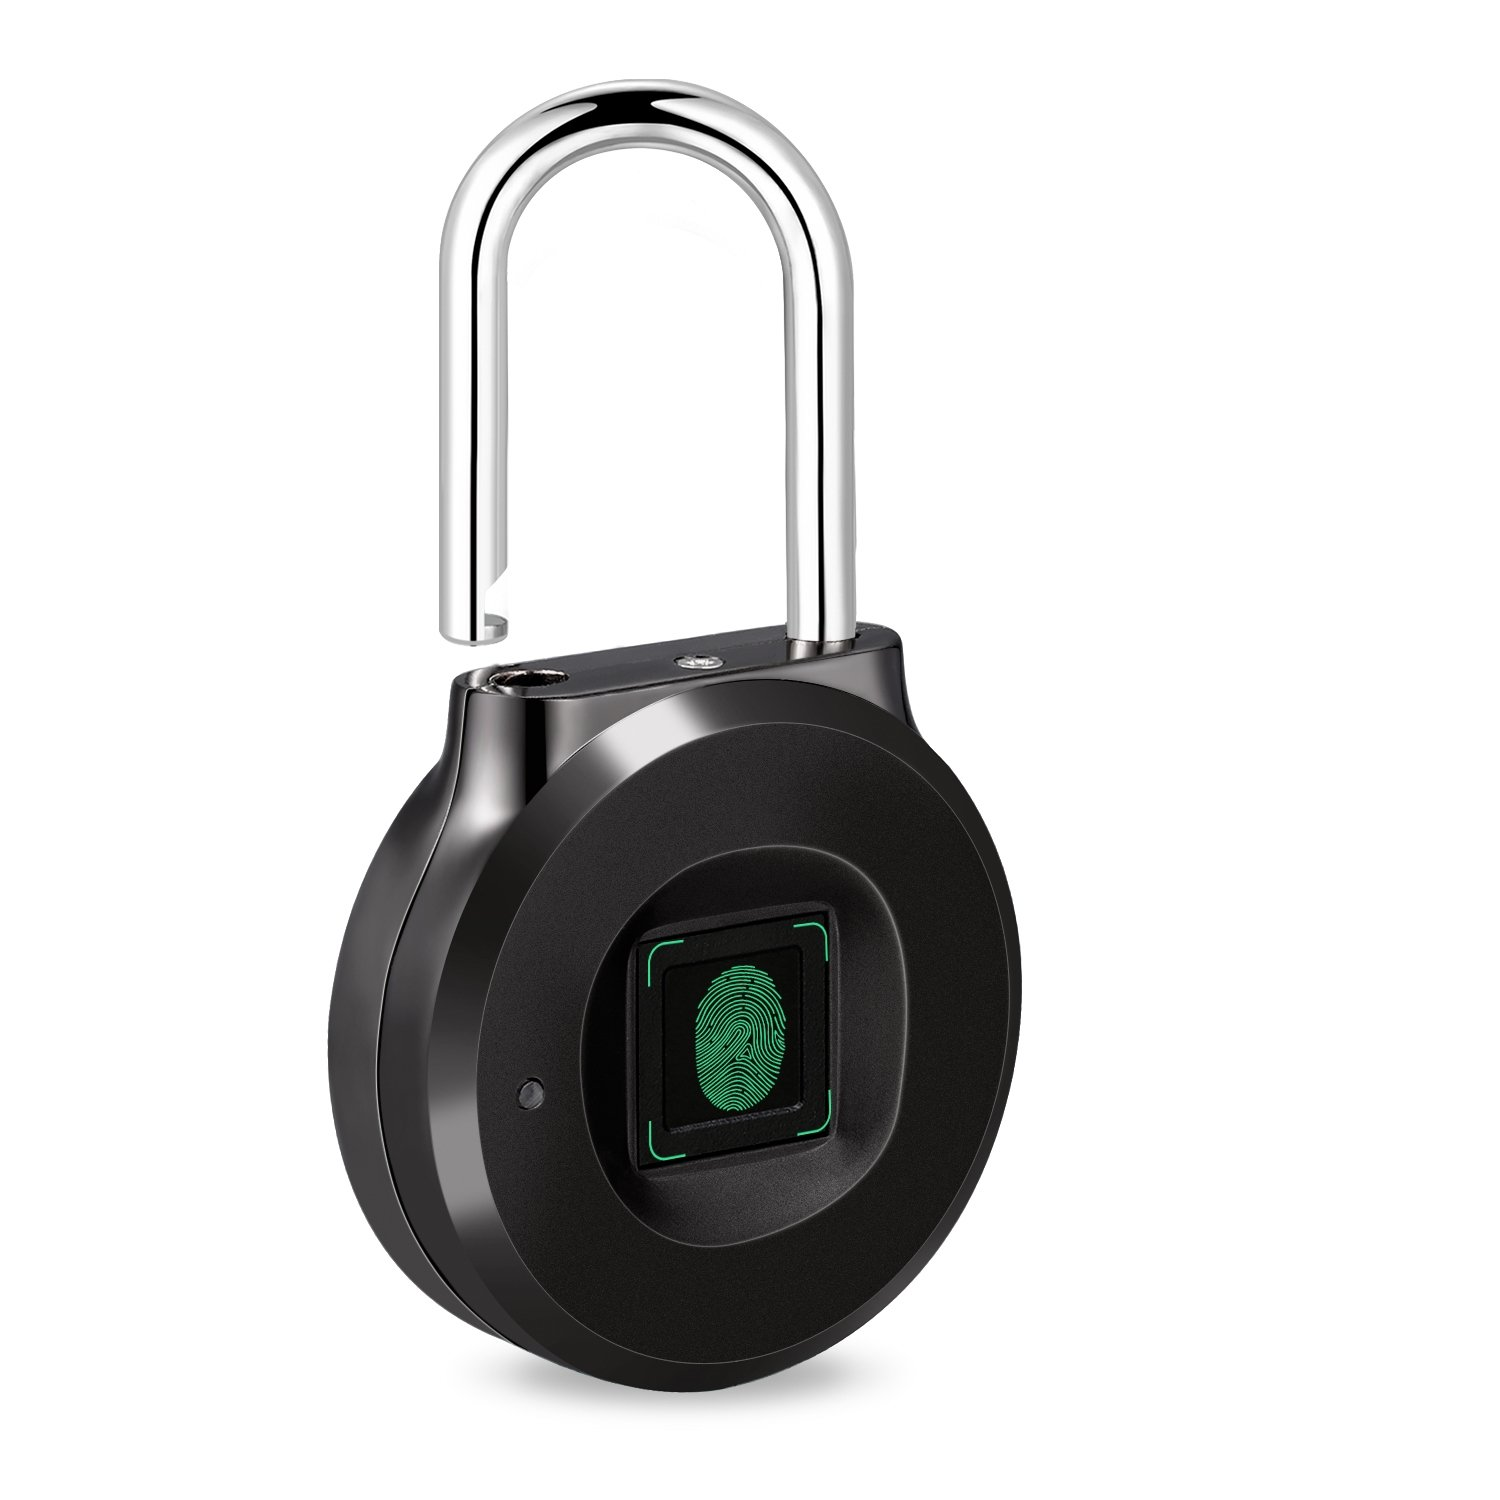 Uervoton Fingerprint Padlock, Smart Lock Ideal for School Locker, Duffel Bag, Shopping Carts, Suitcase, Gym Locker, Cabinet, Cupboard, Drawer and More Indoor Applications (Small)